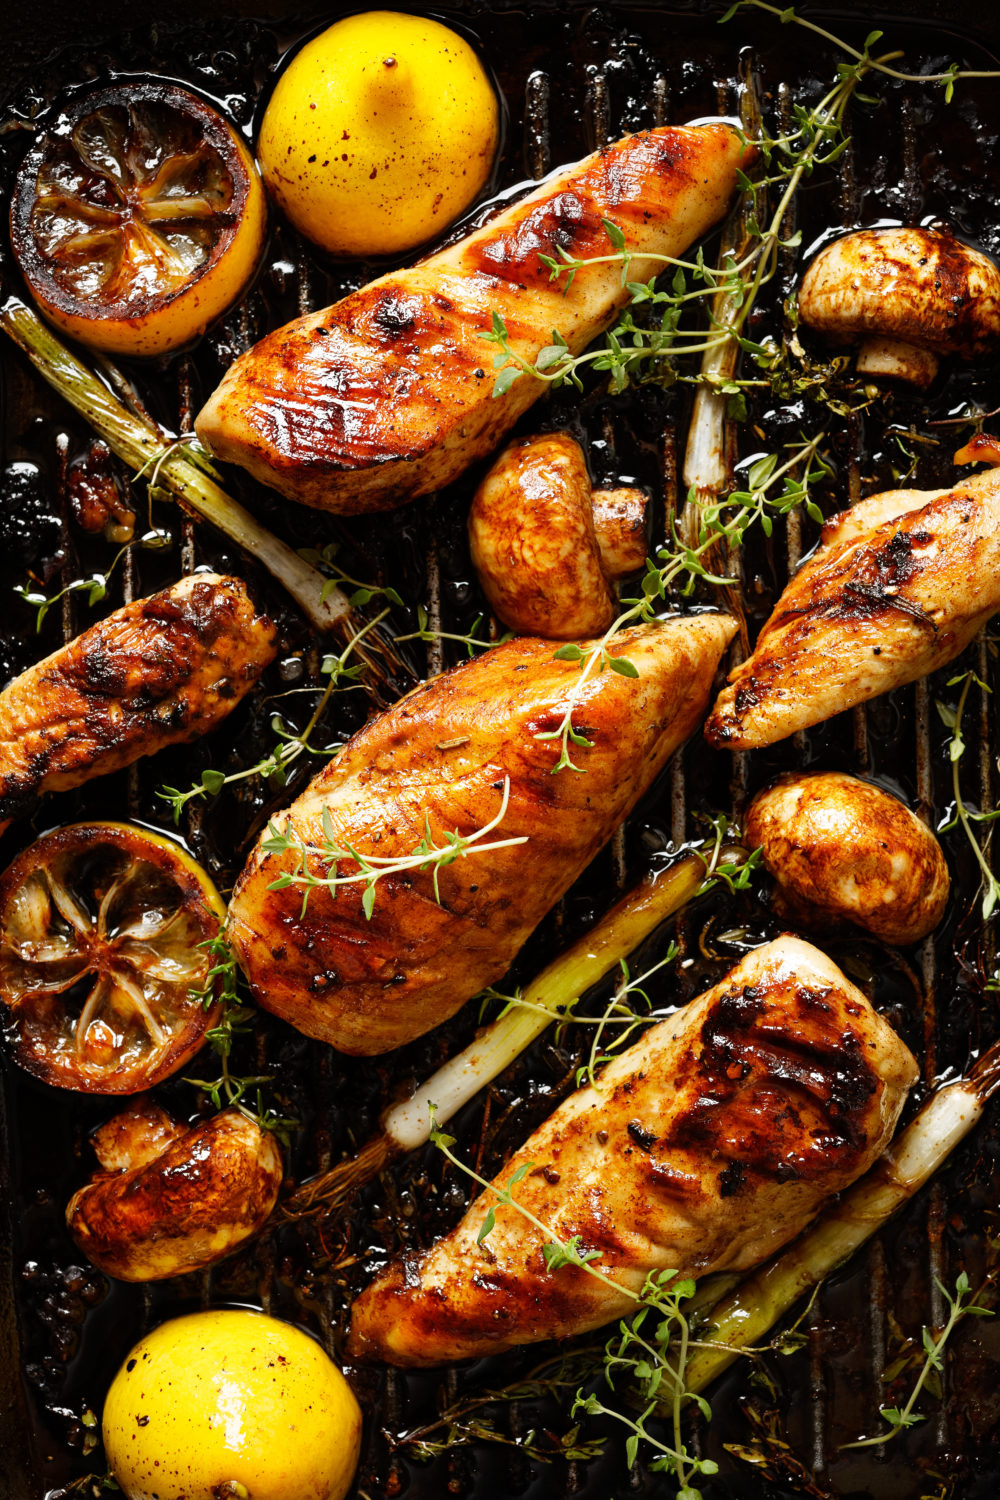 Grilled chicken breast with vegetables in a fragrant lemon marinade